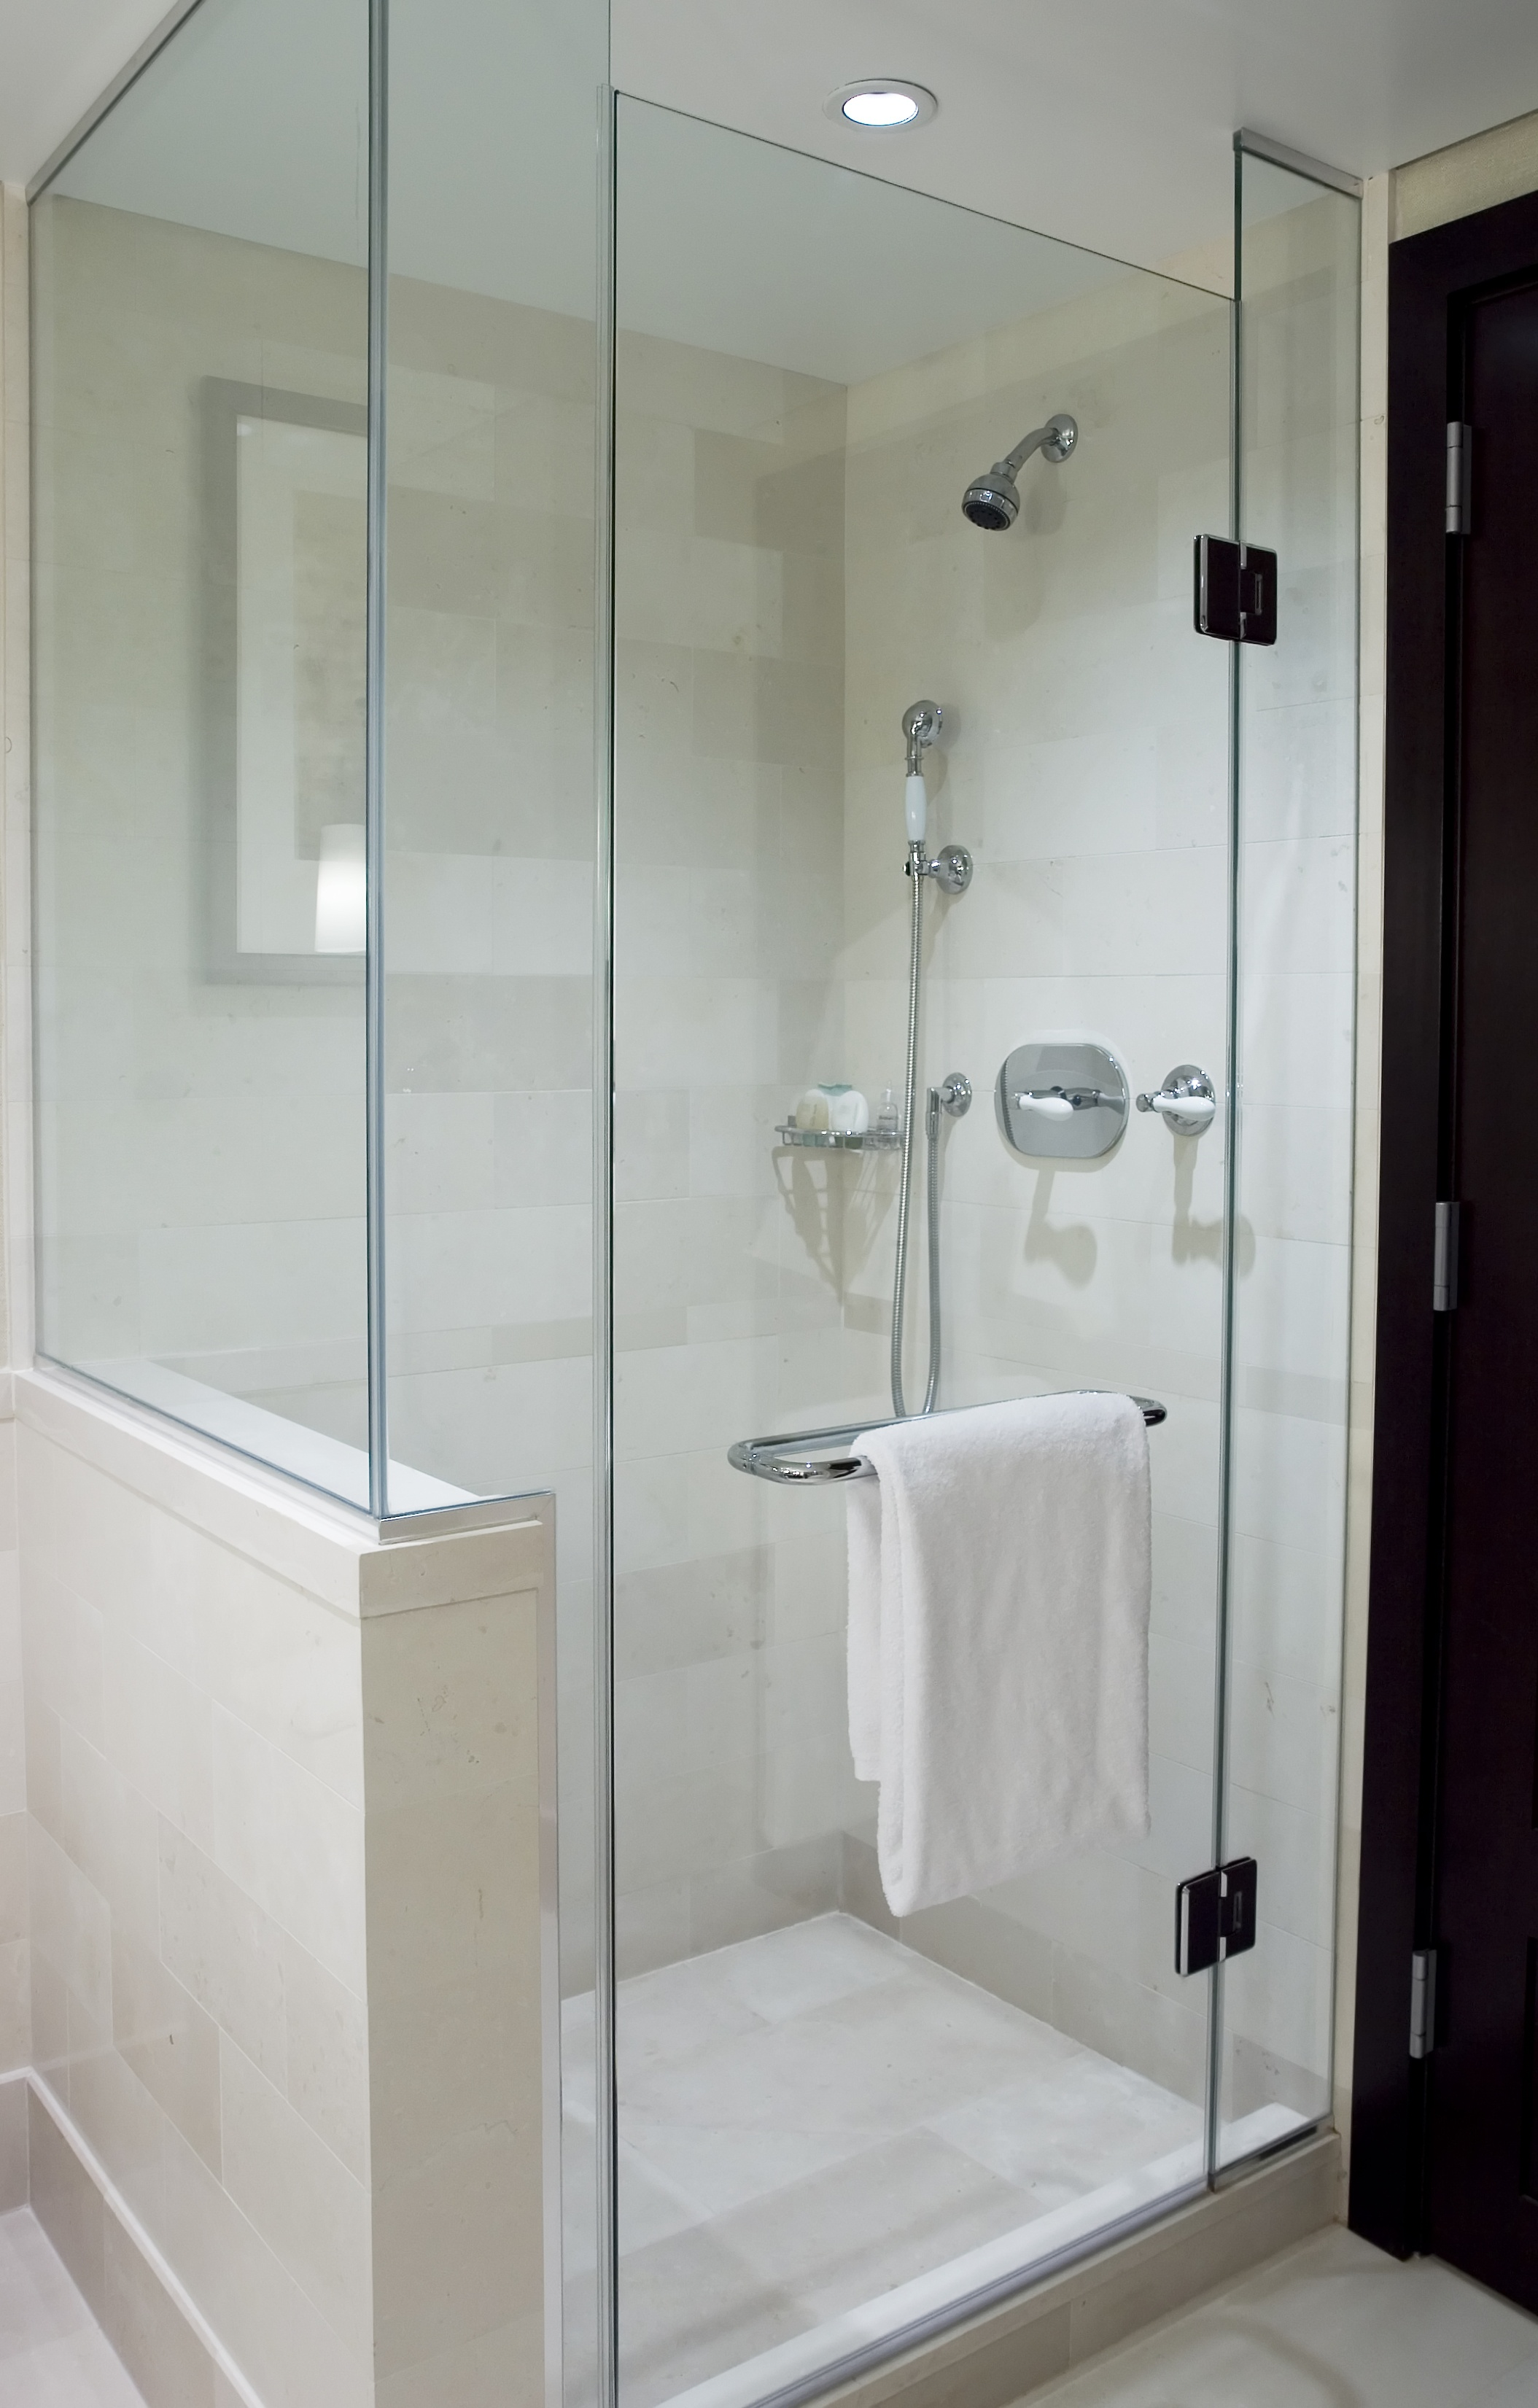 Scottsdale Residential Windows And Household Glass